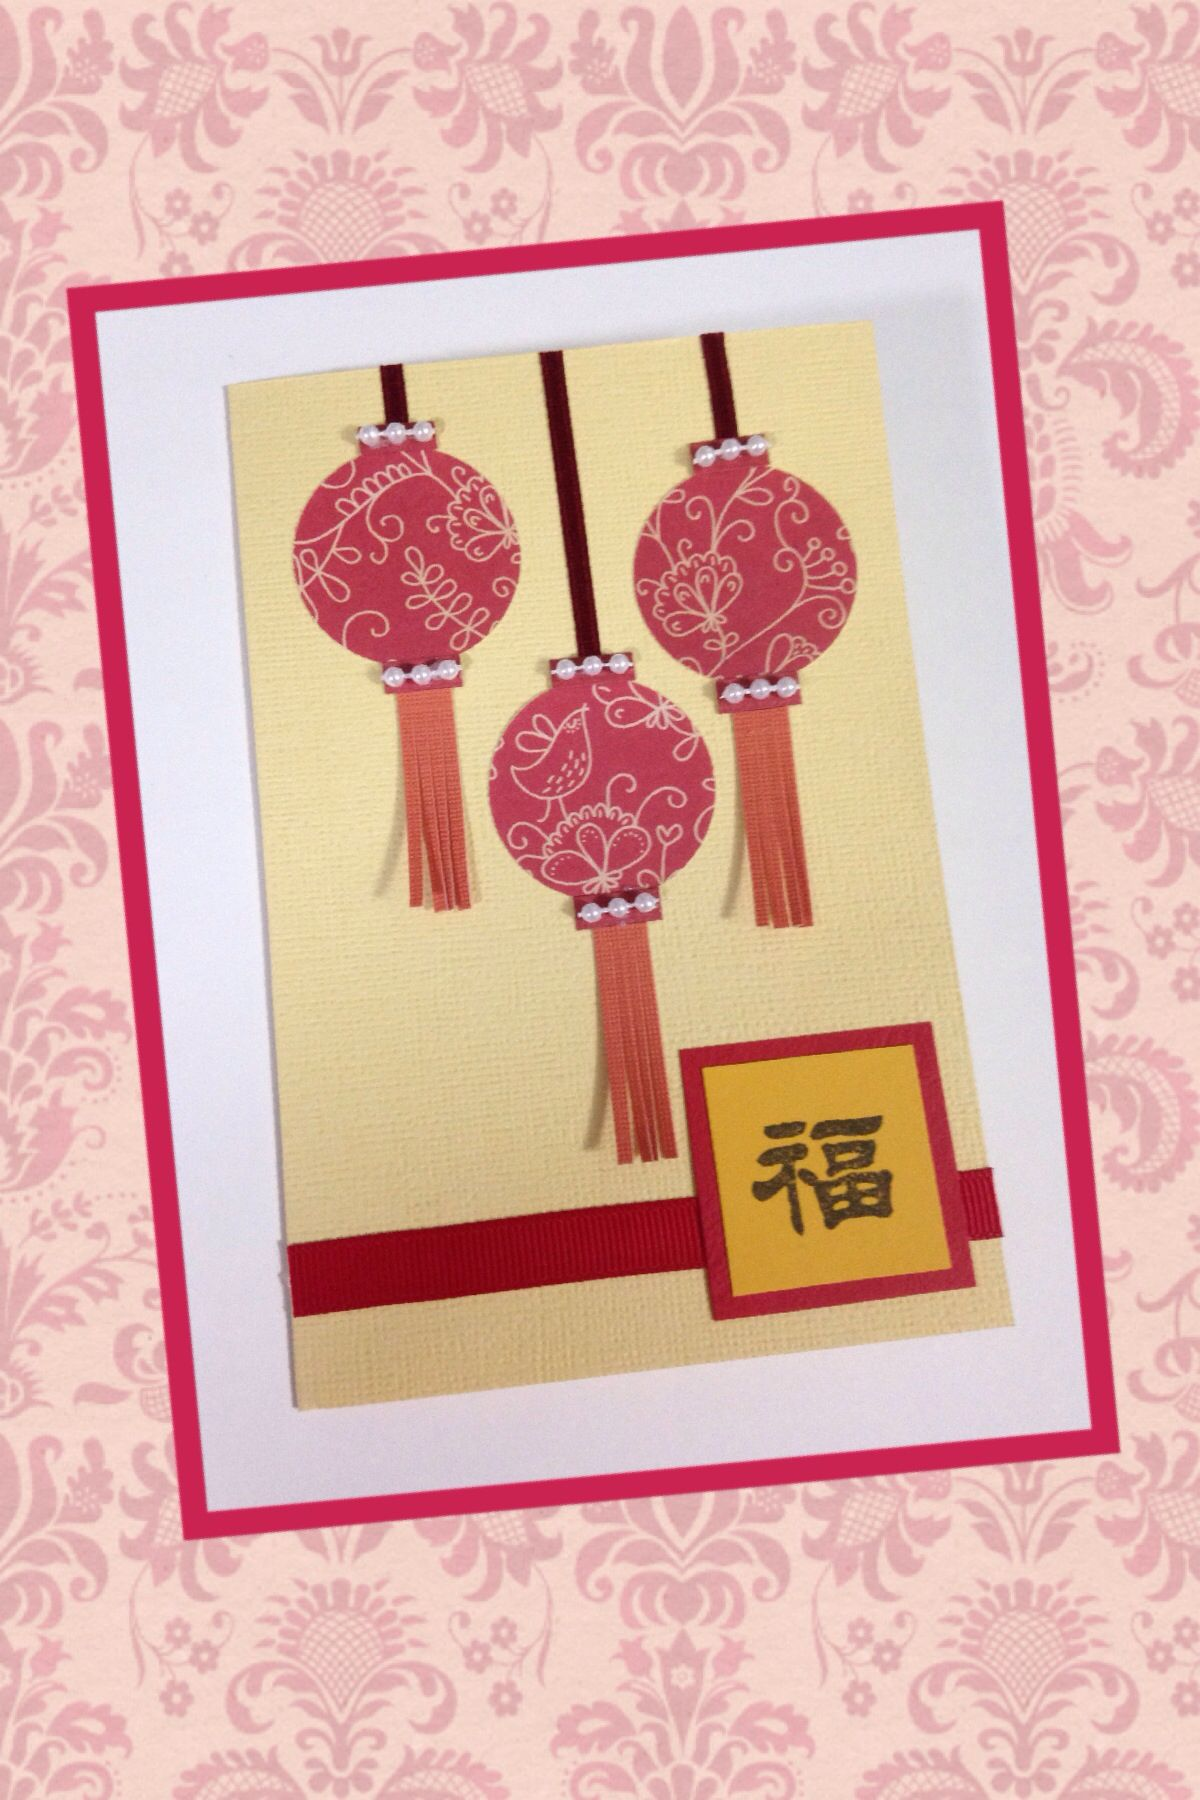 Chinese New Year greeting card New year cards handmade